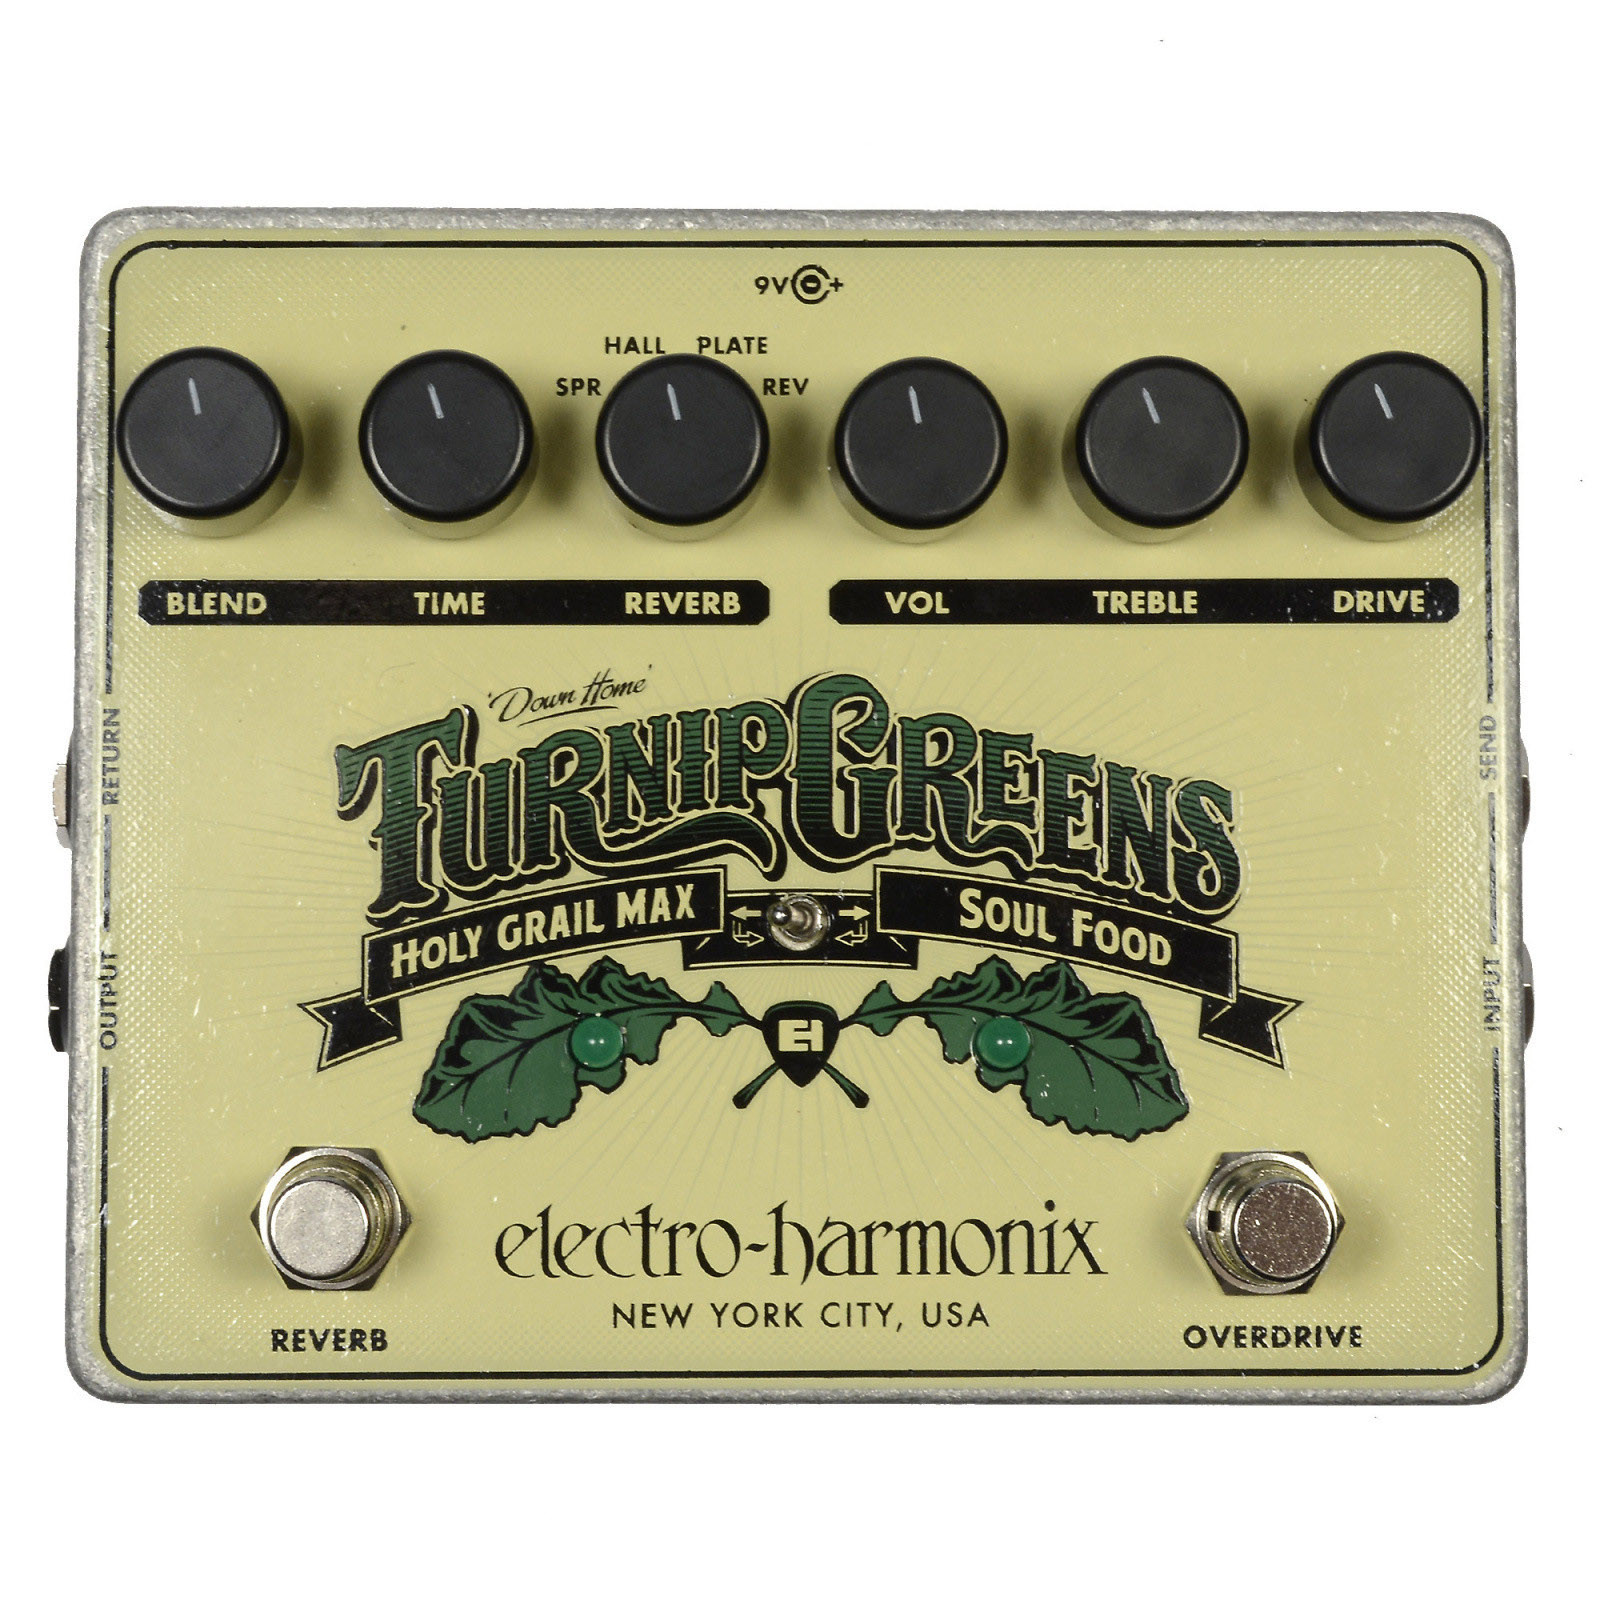 Electro-Harmonix Turnip Greens Multi-Effects Pedal w/Soul Food & Holy Grail Max